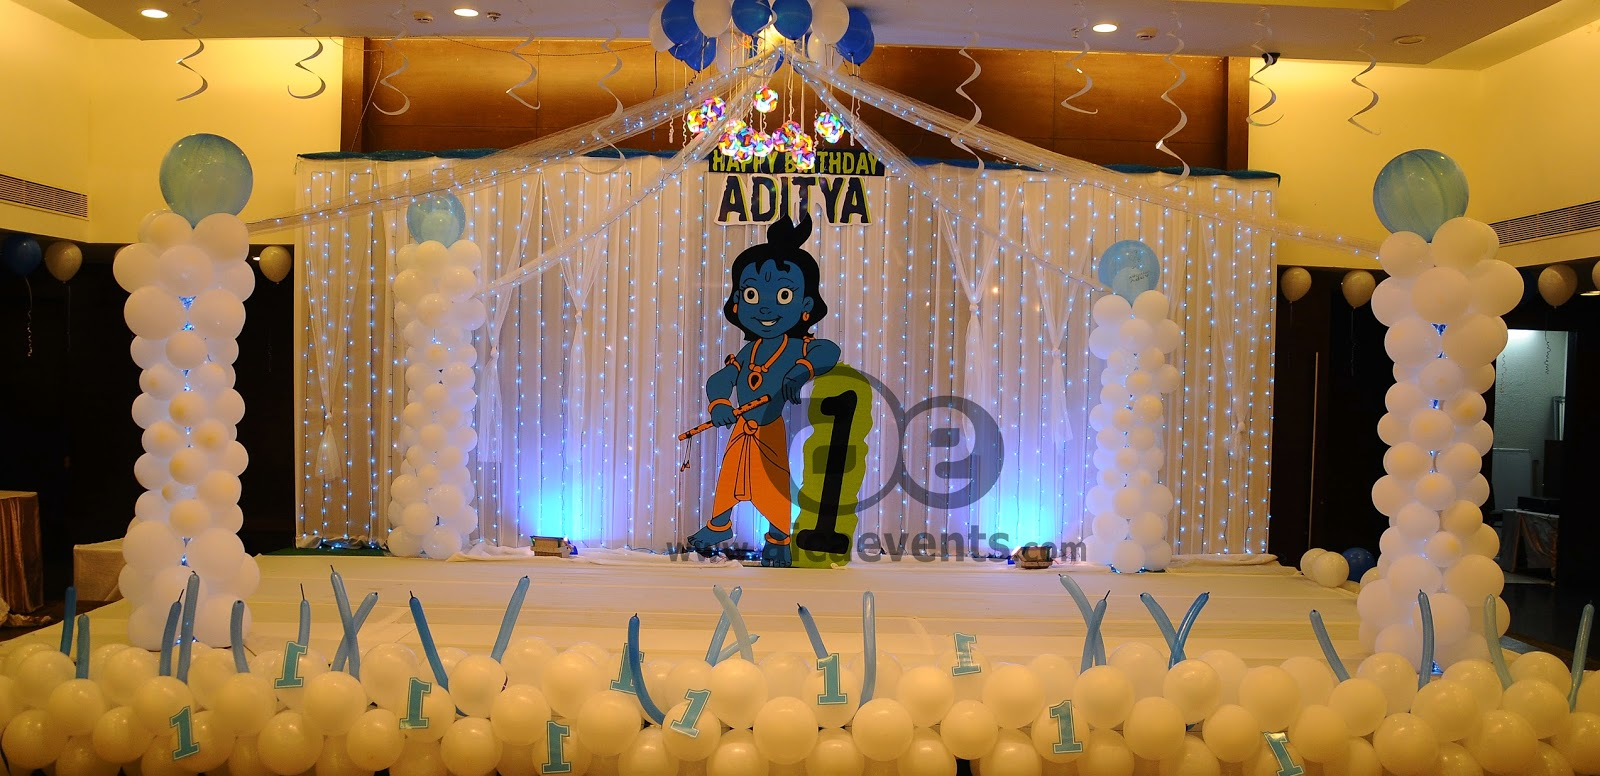 Aicaevents krishna theme birthday party decorations for 1st birthday hall decoration